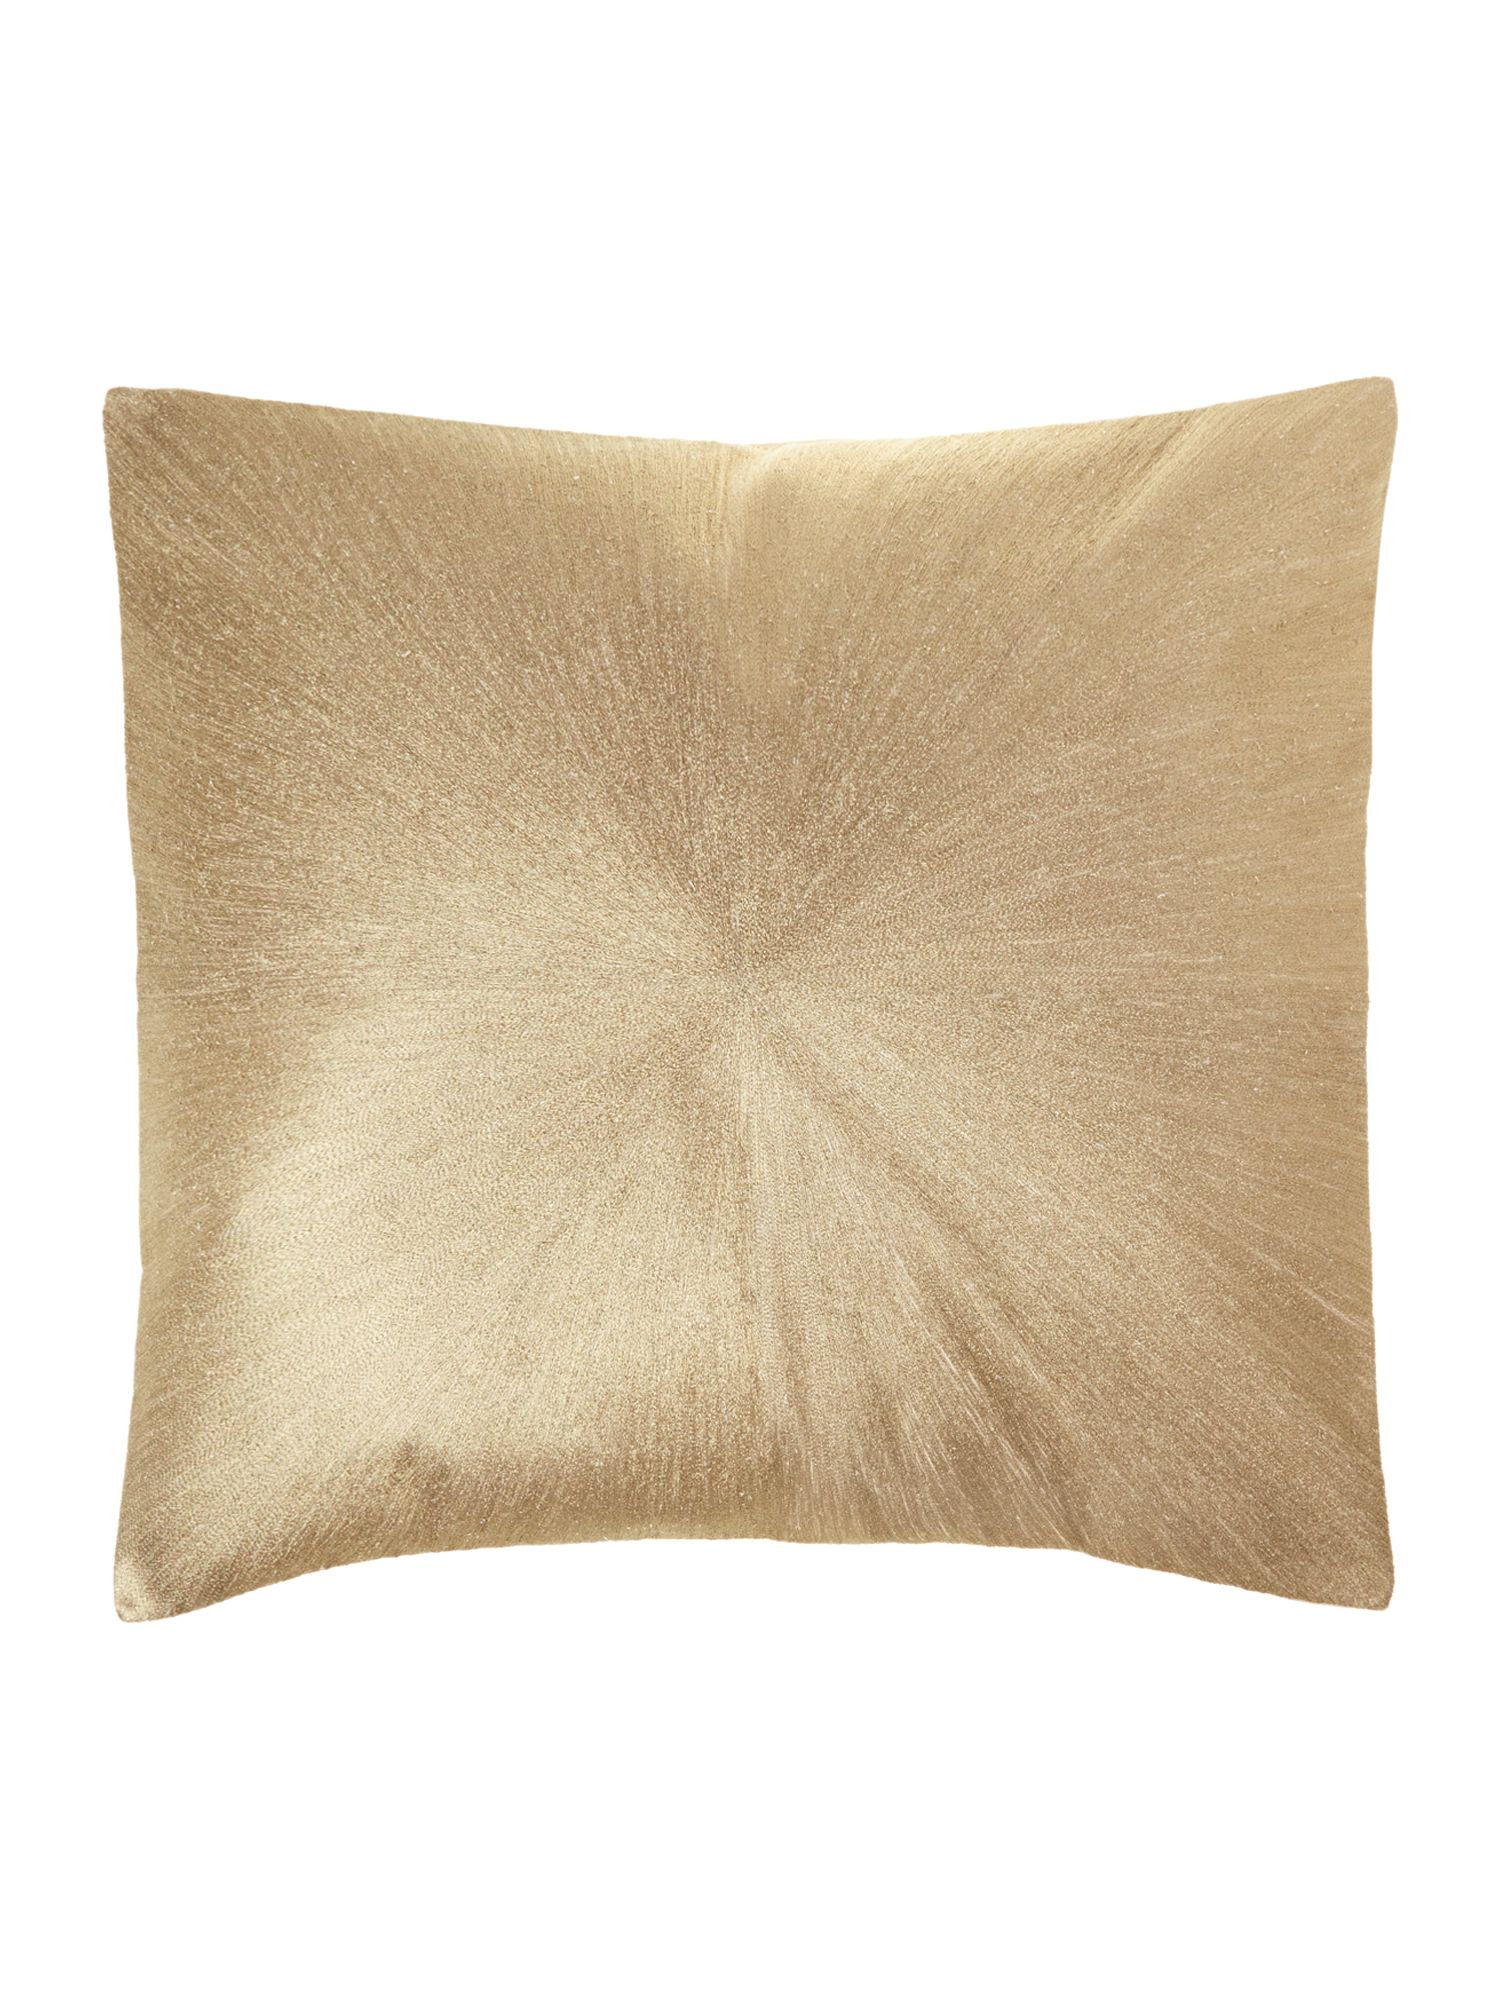 Stone starburst cushion